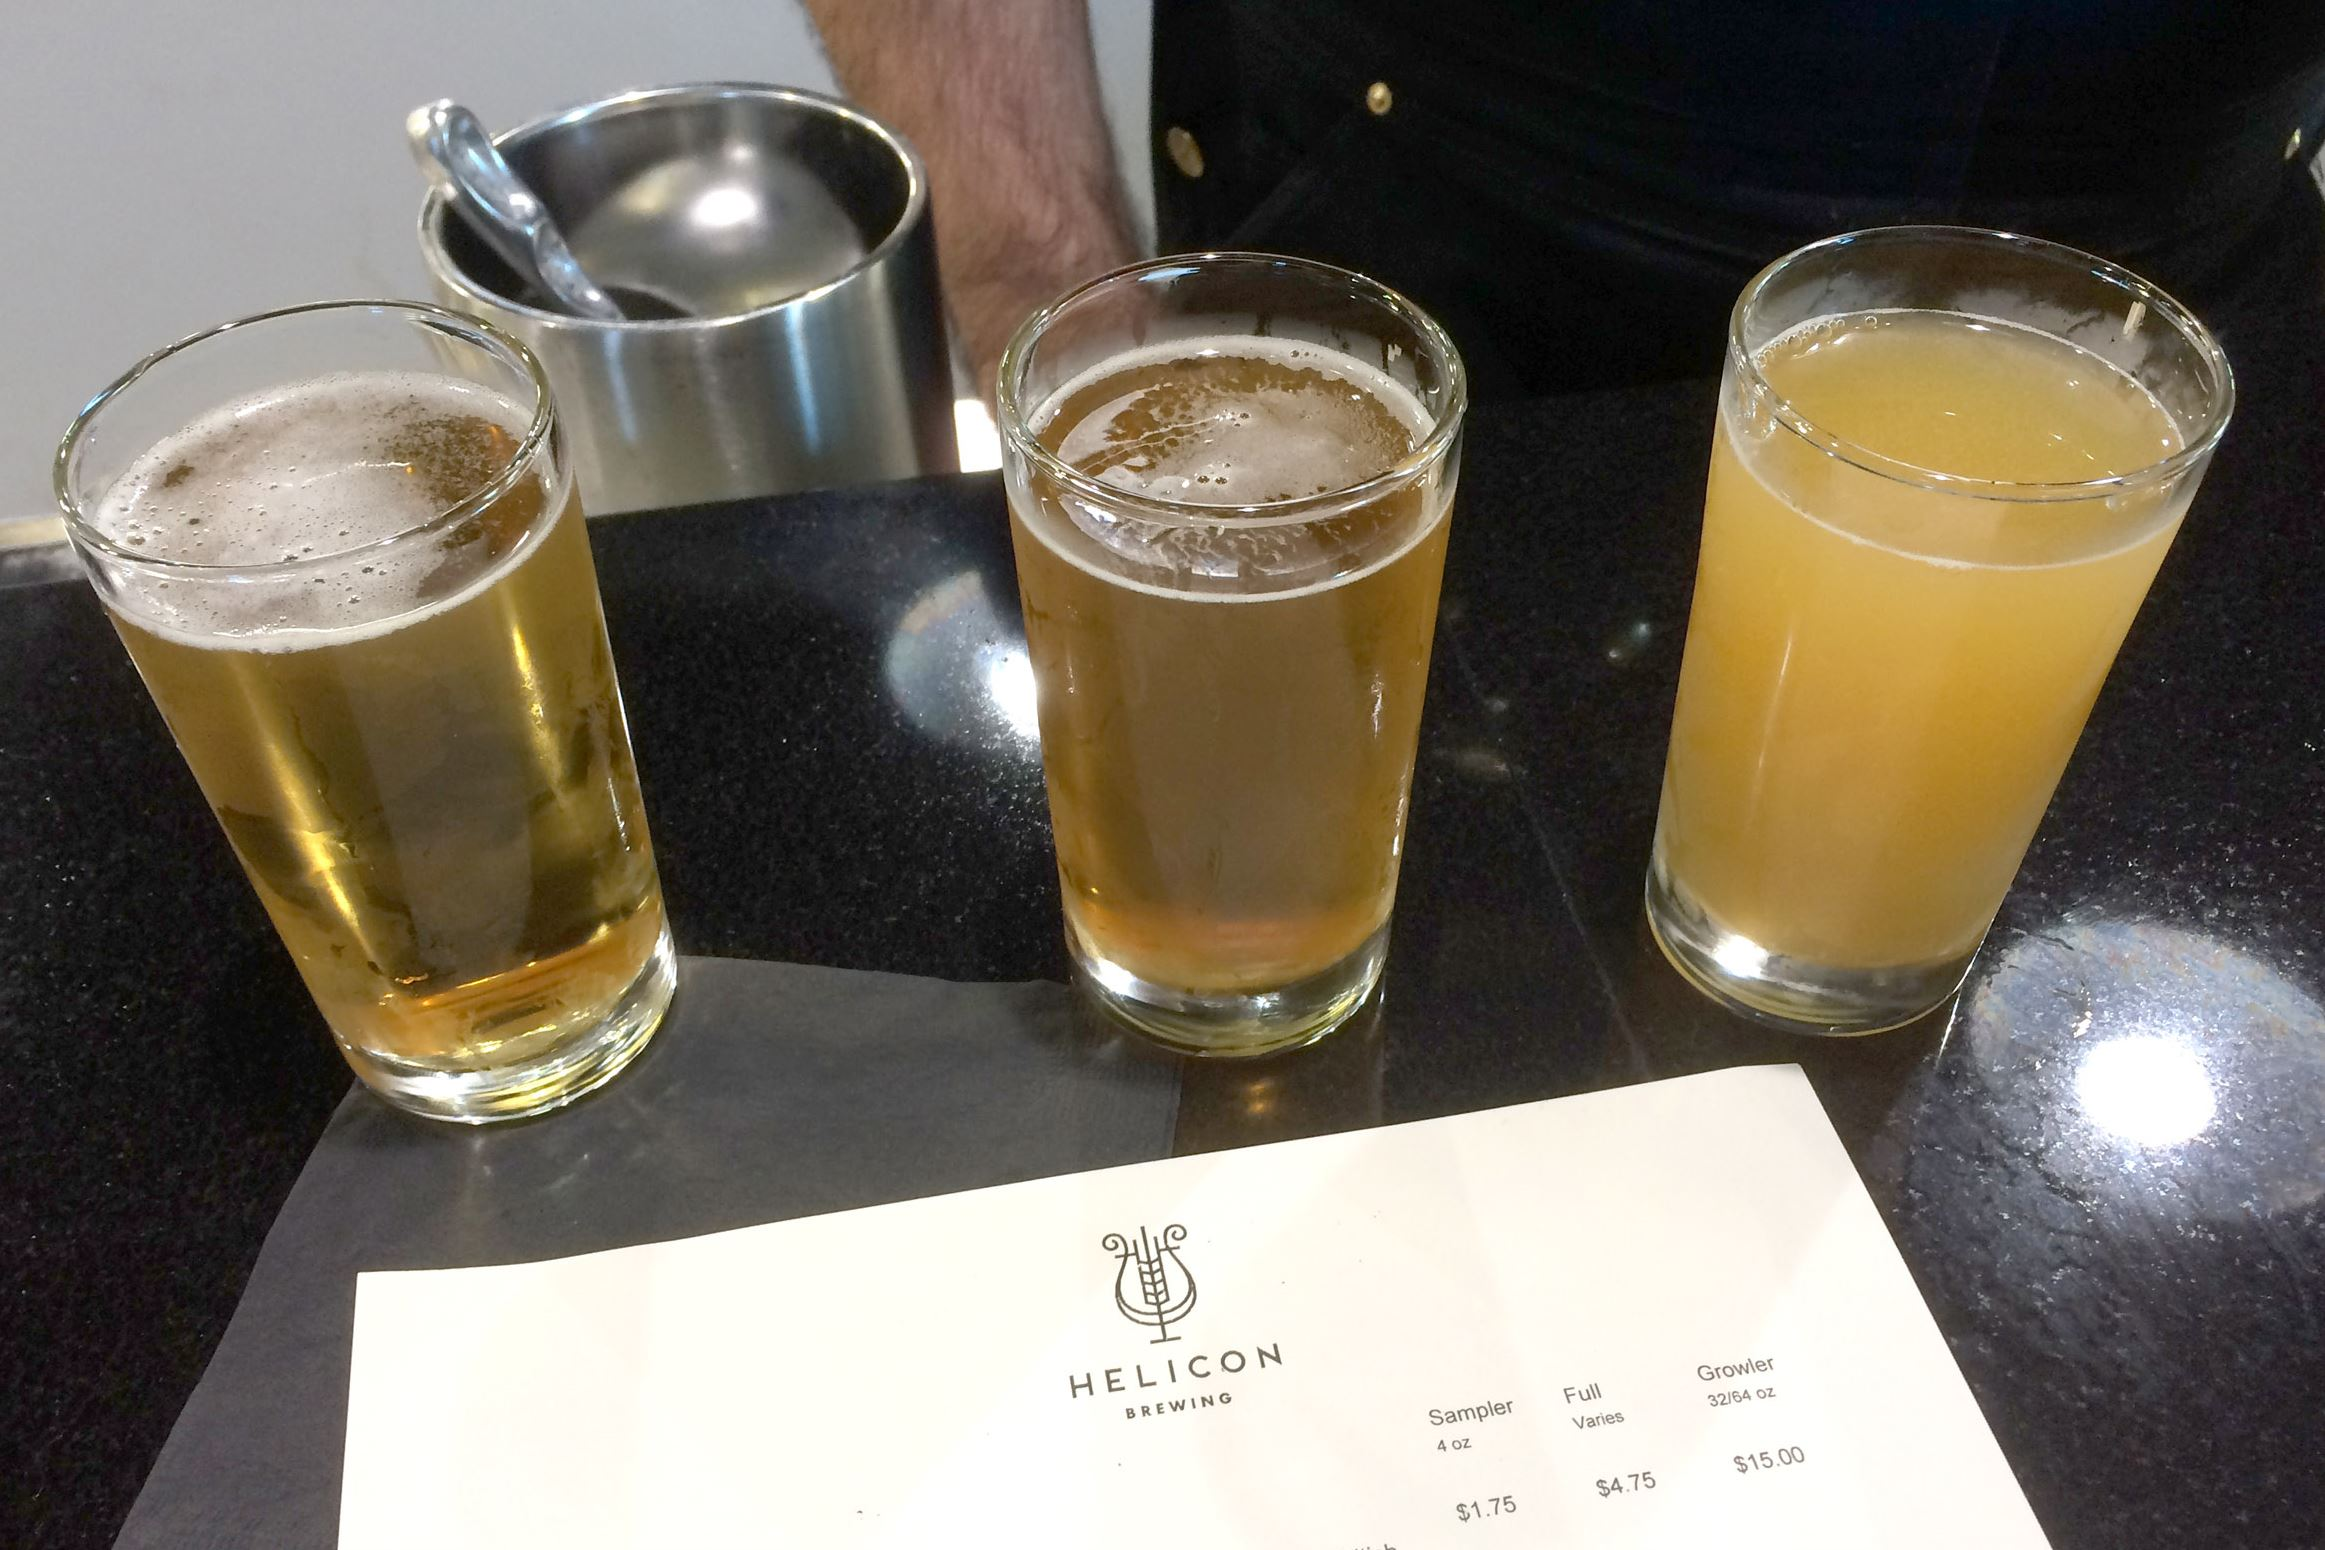 helicon brewing oakdale 03-1 Three 4-ounce sampler glasses of the first beers at Helicon Brewing Co. in Oakdale: From left, Hellen Lager, American Pale Ale 001 and India Pale Ale 002 -- the latter two being the first and second beers ever brewed on Helicon's system.